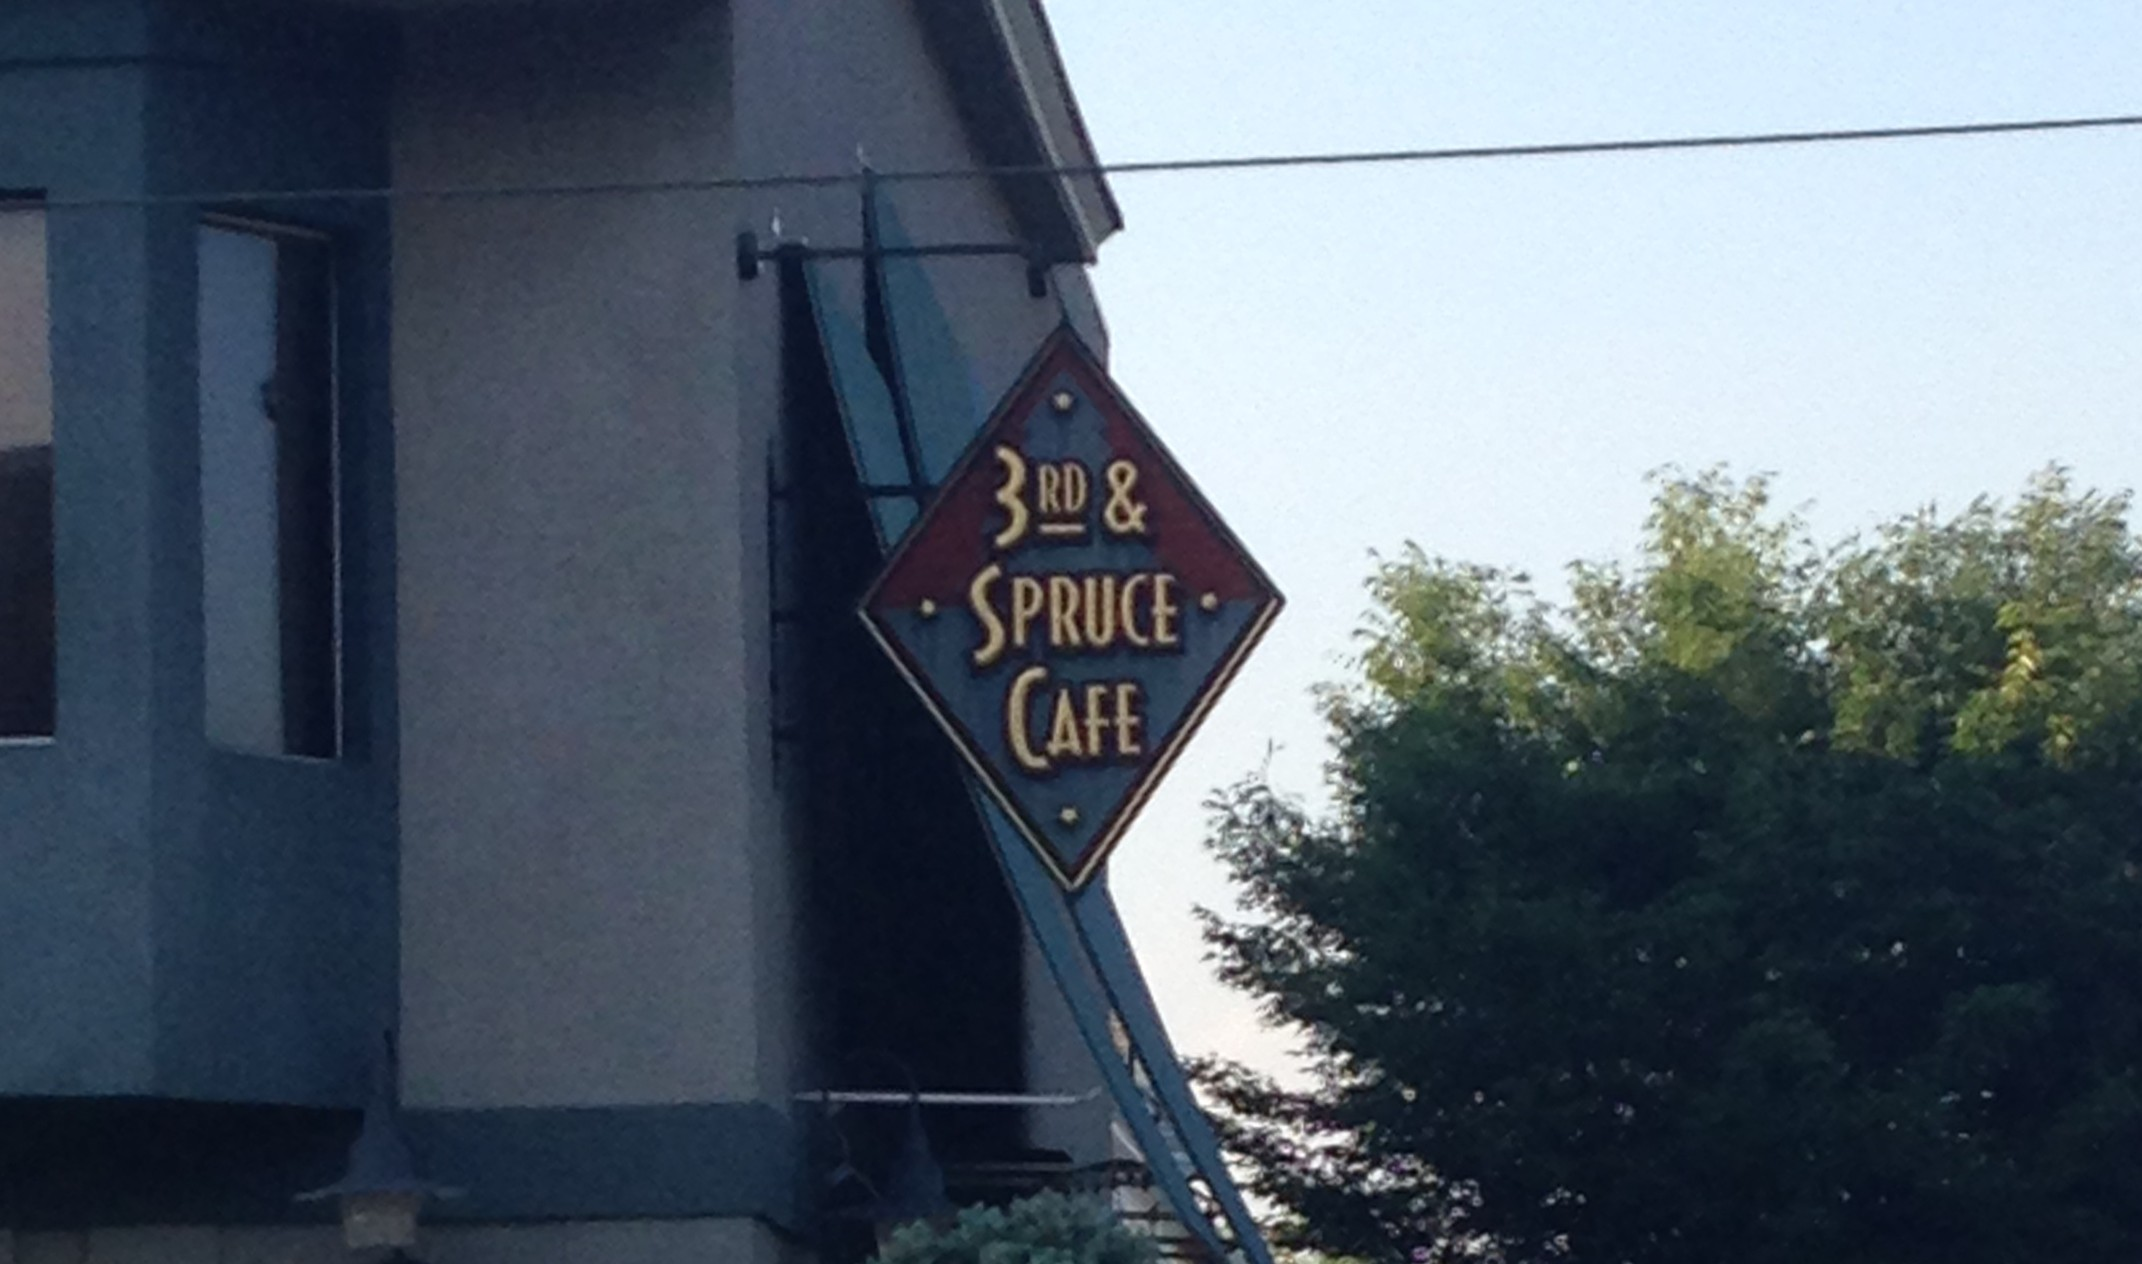 3rd and Spruce Cafe